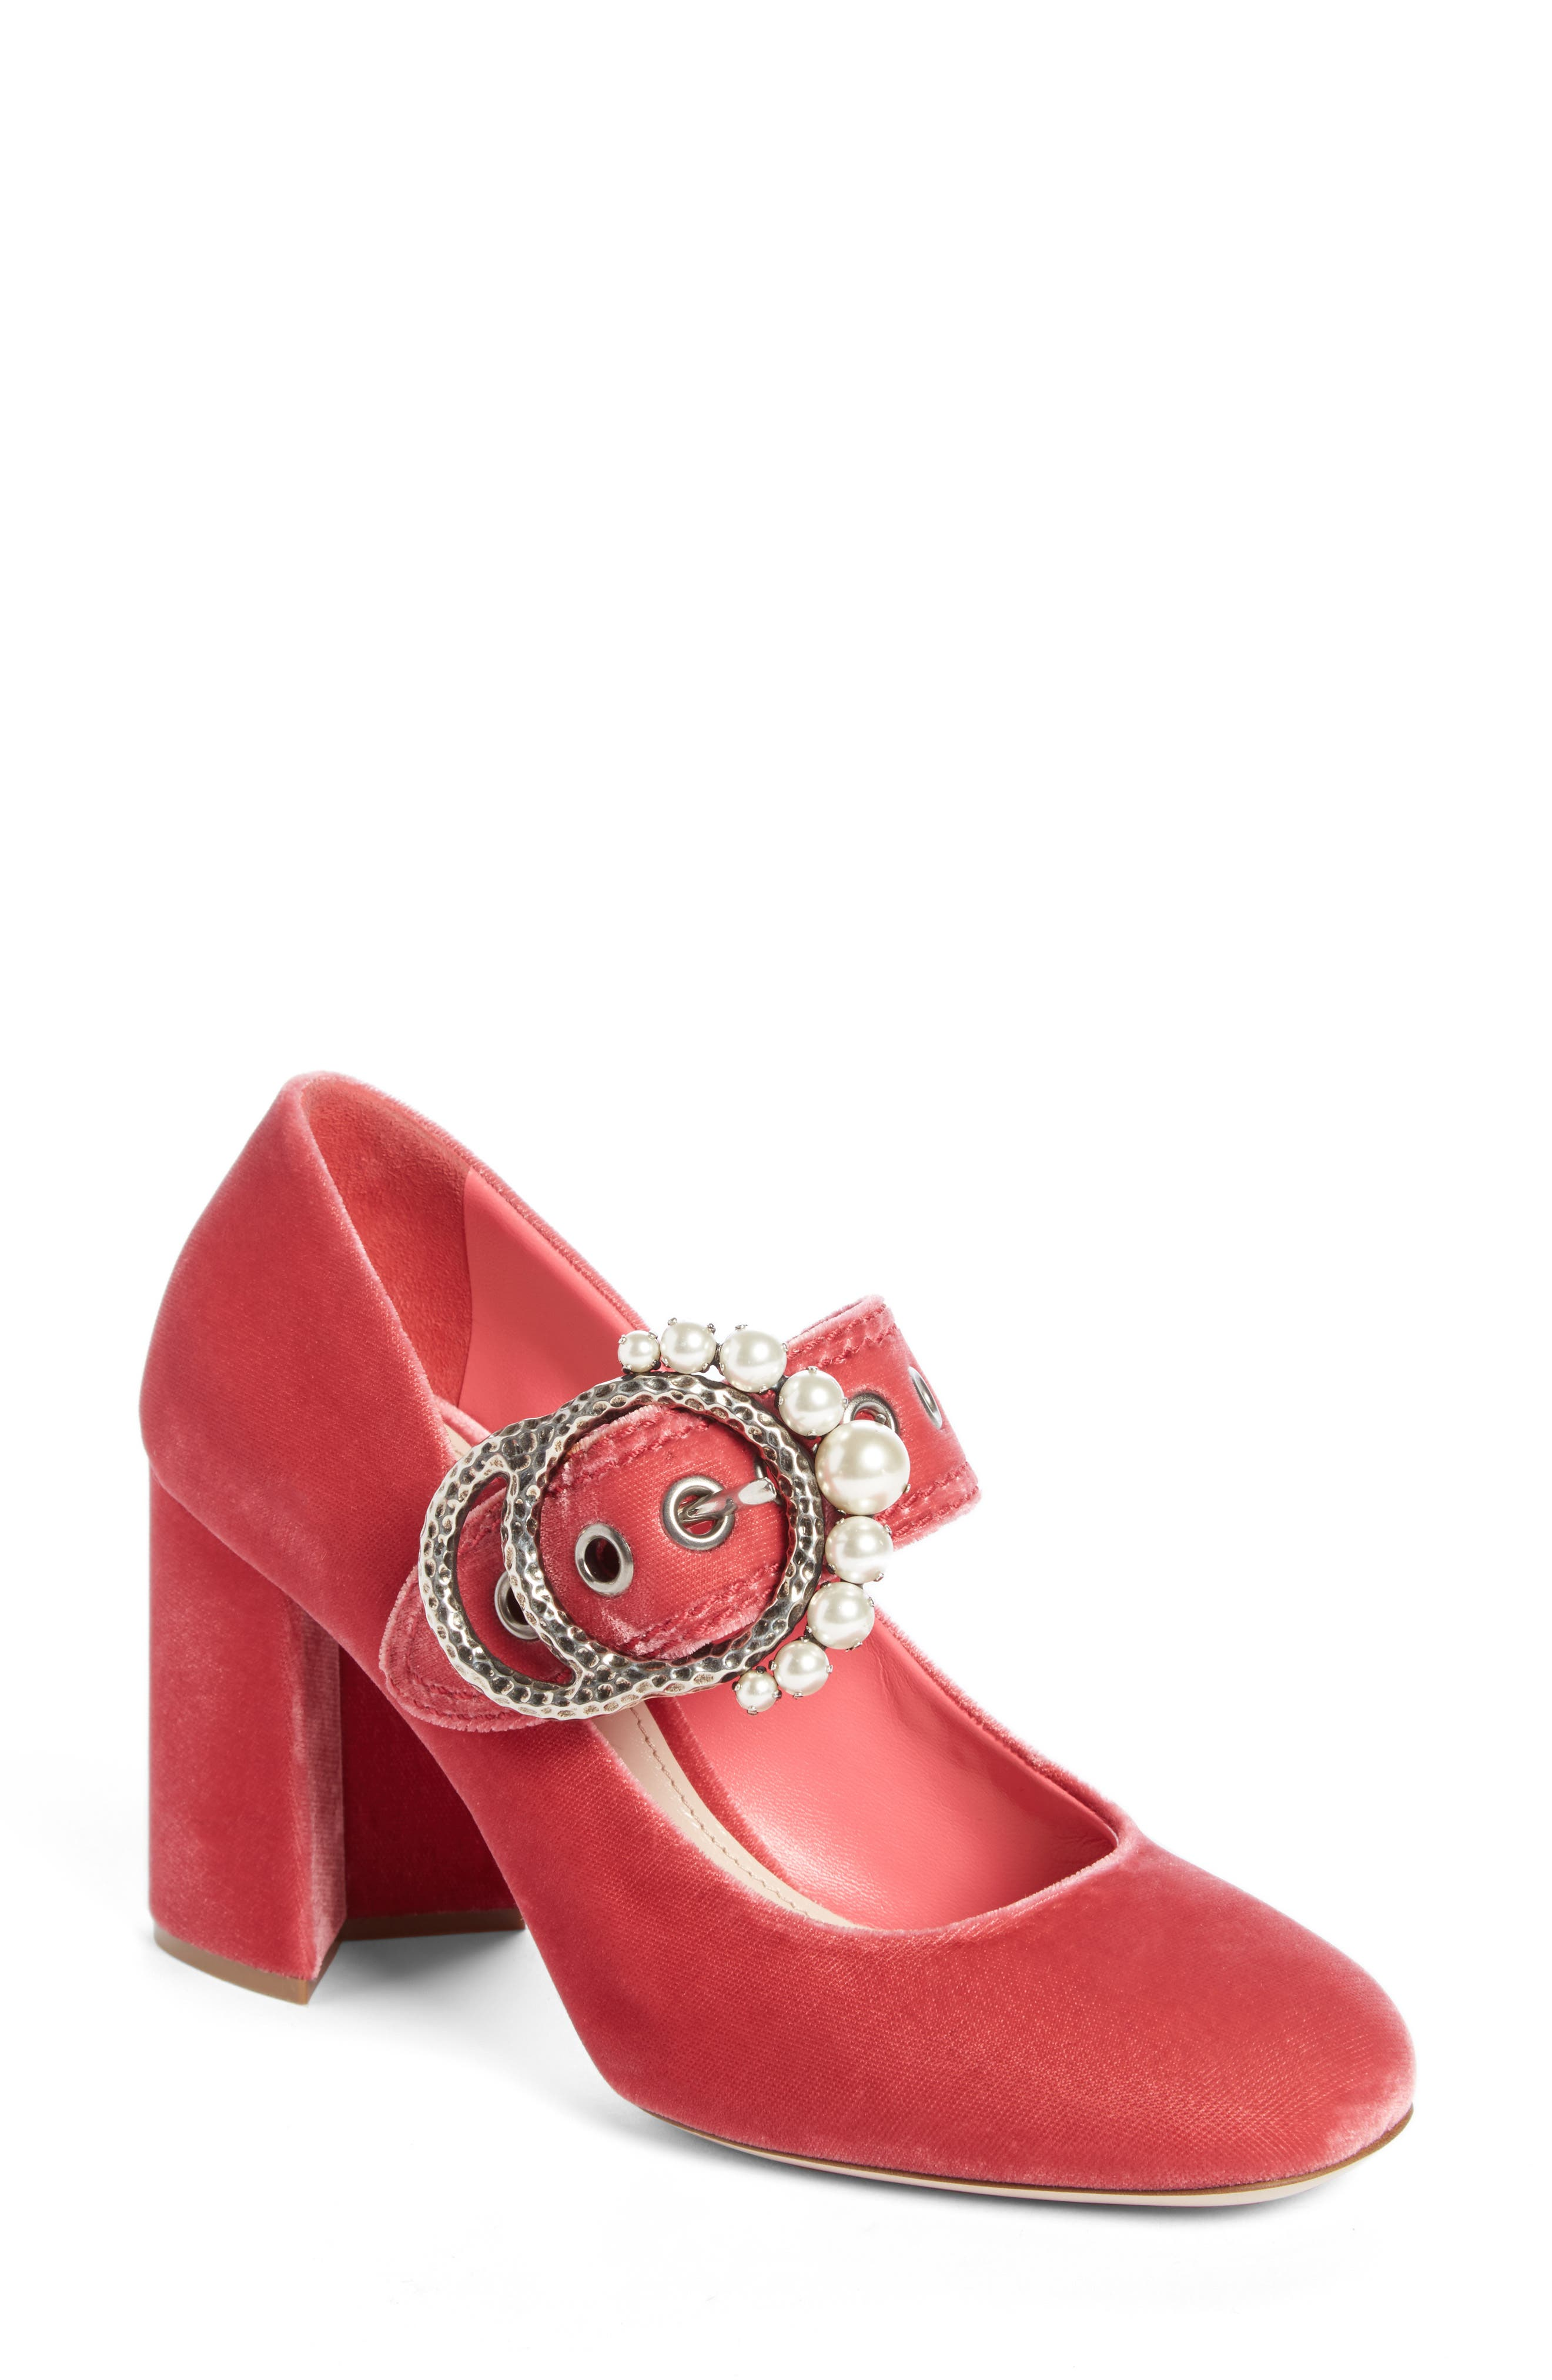 Alternate Image 1 Selected - Miu Miu Imitation Pearl Buckle Pump (Women)